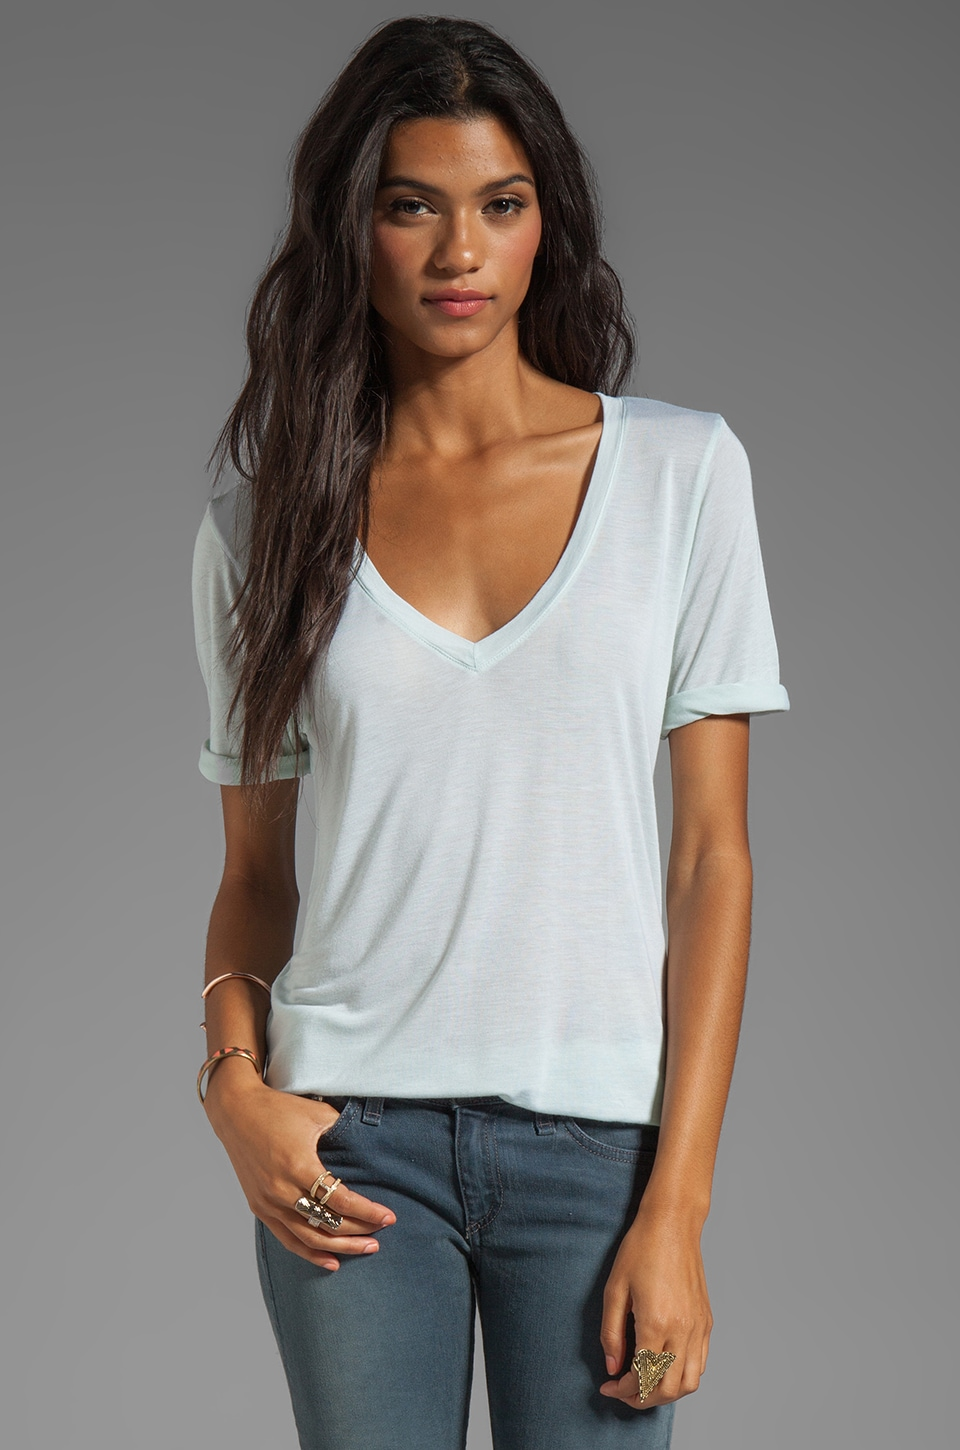 Feel the Piece Best Friend V-Neck Tee in Mint